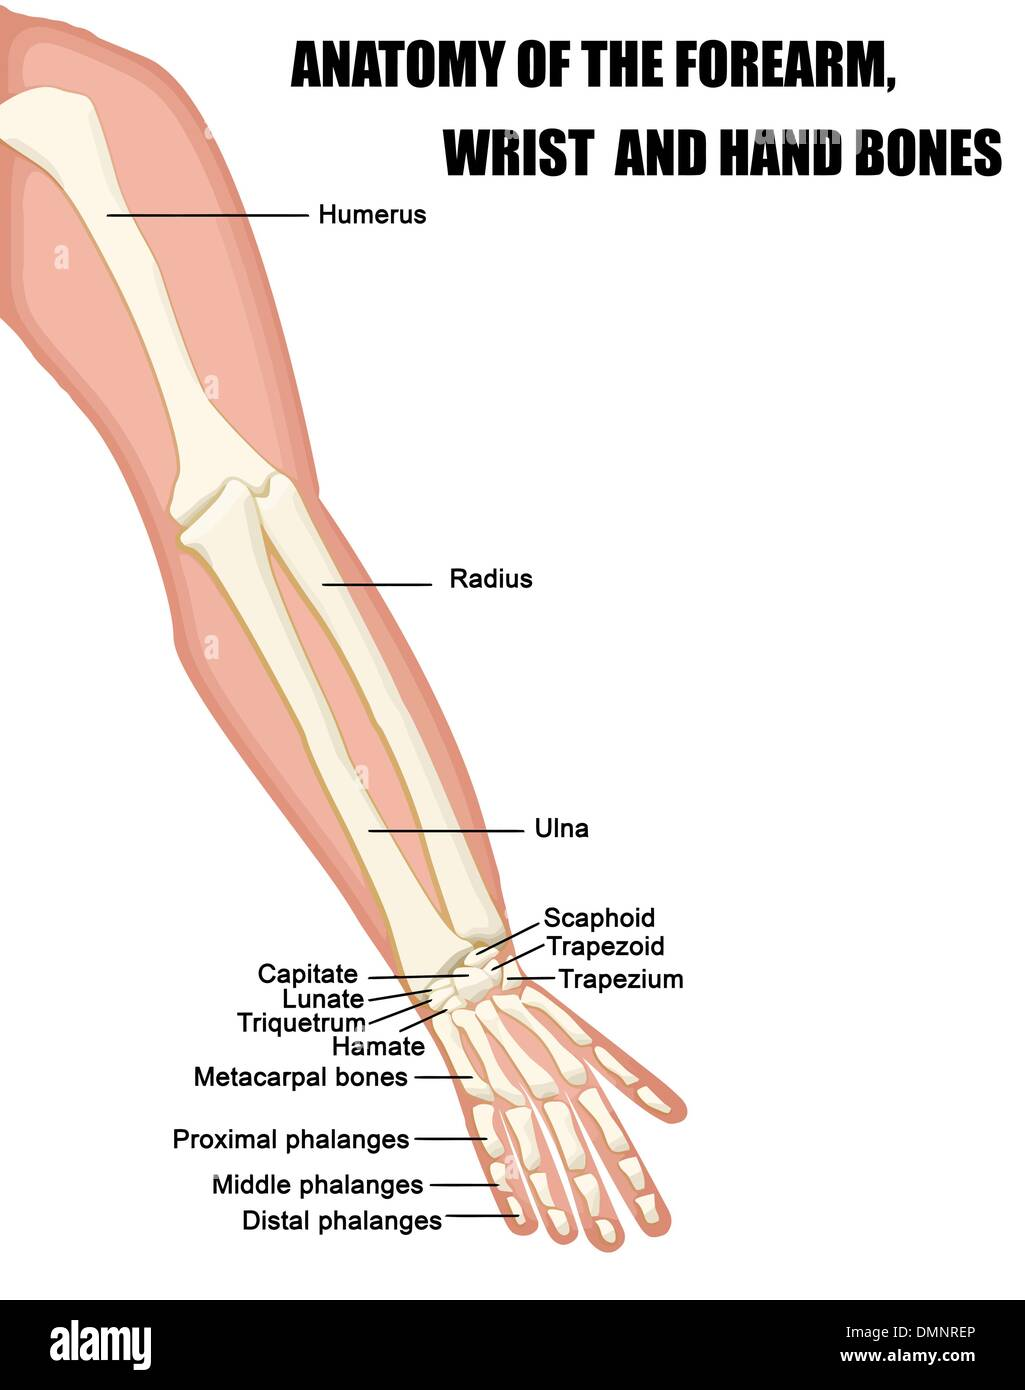 Hand and wrist bones anatomy